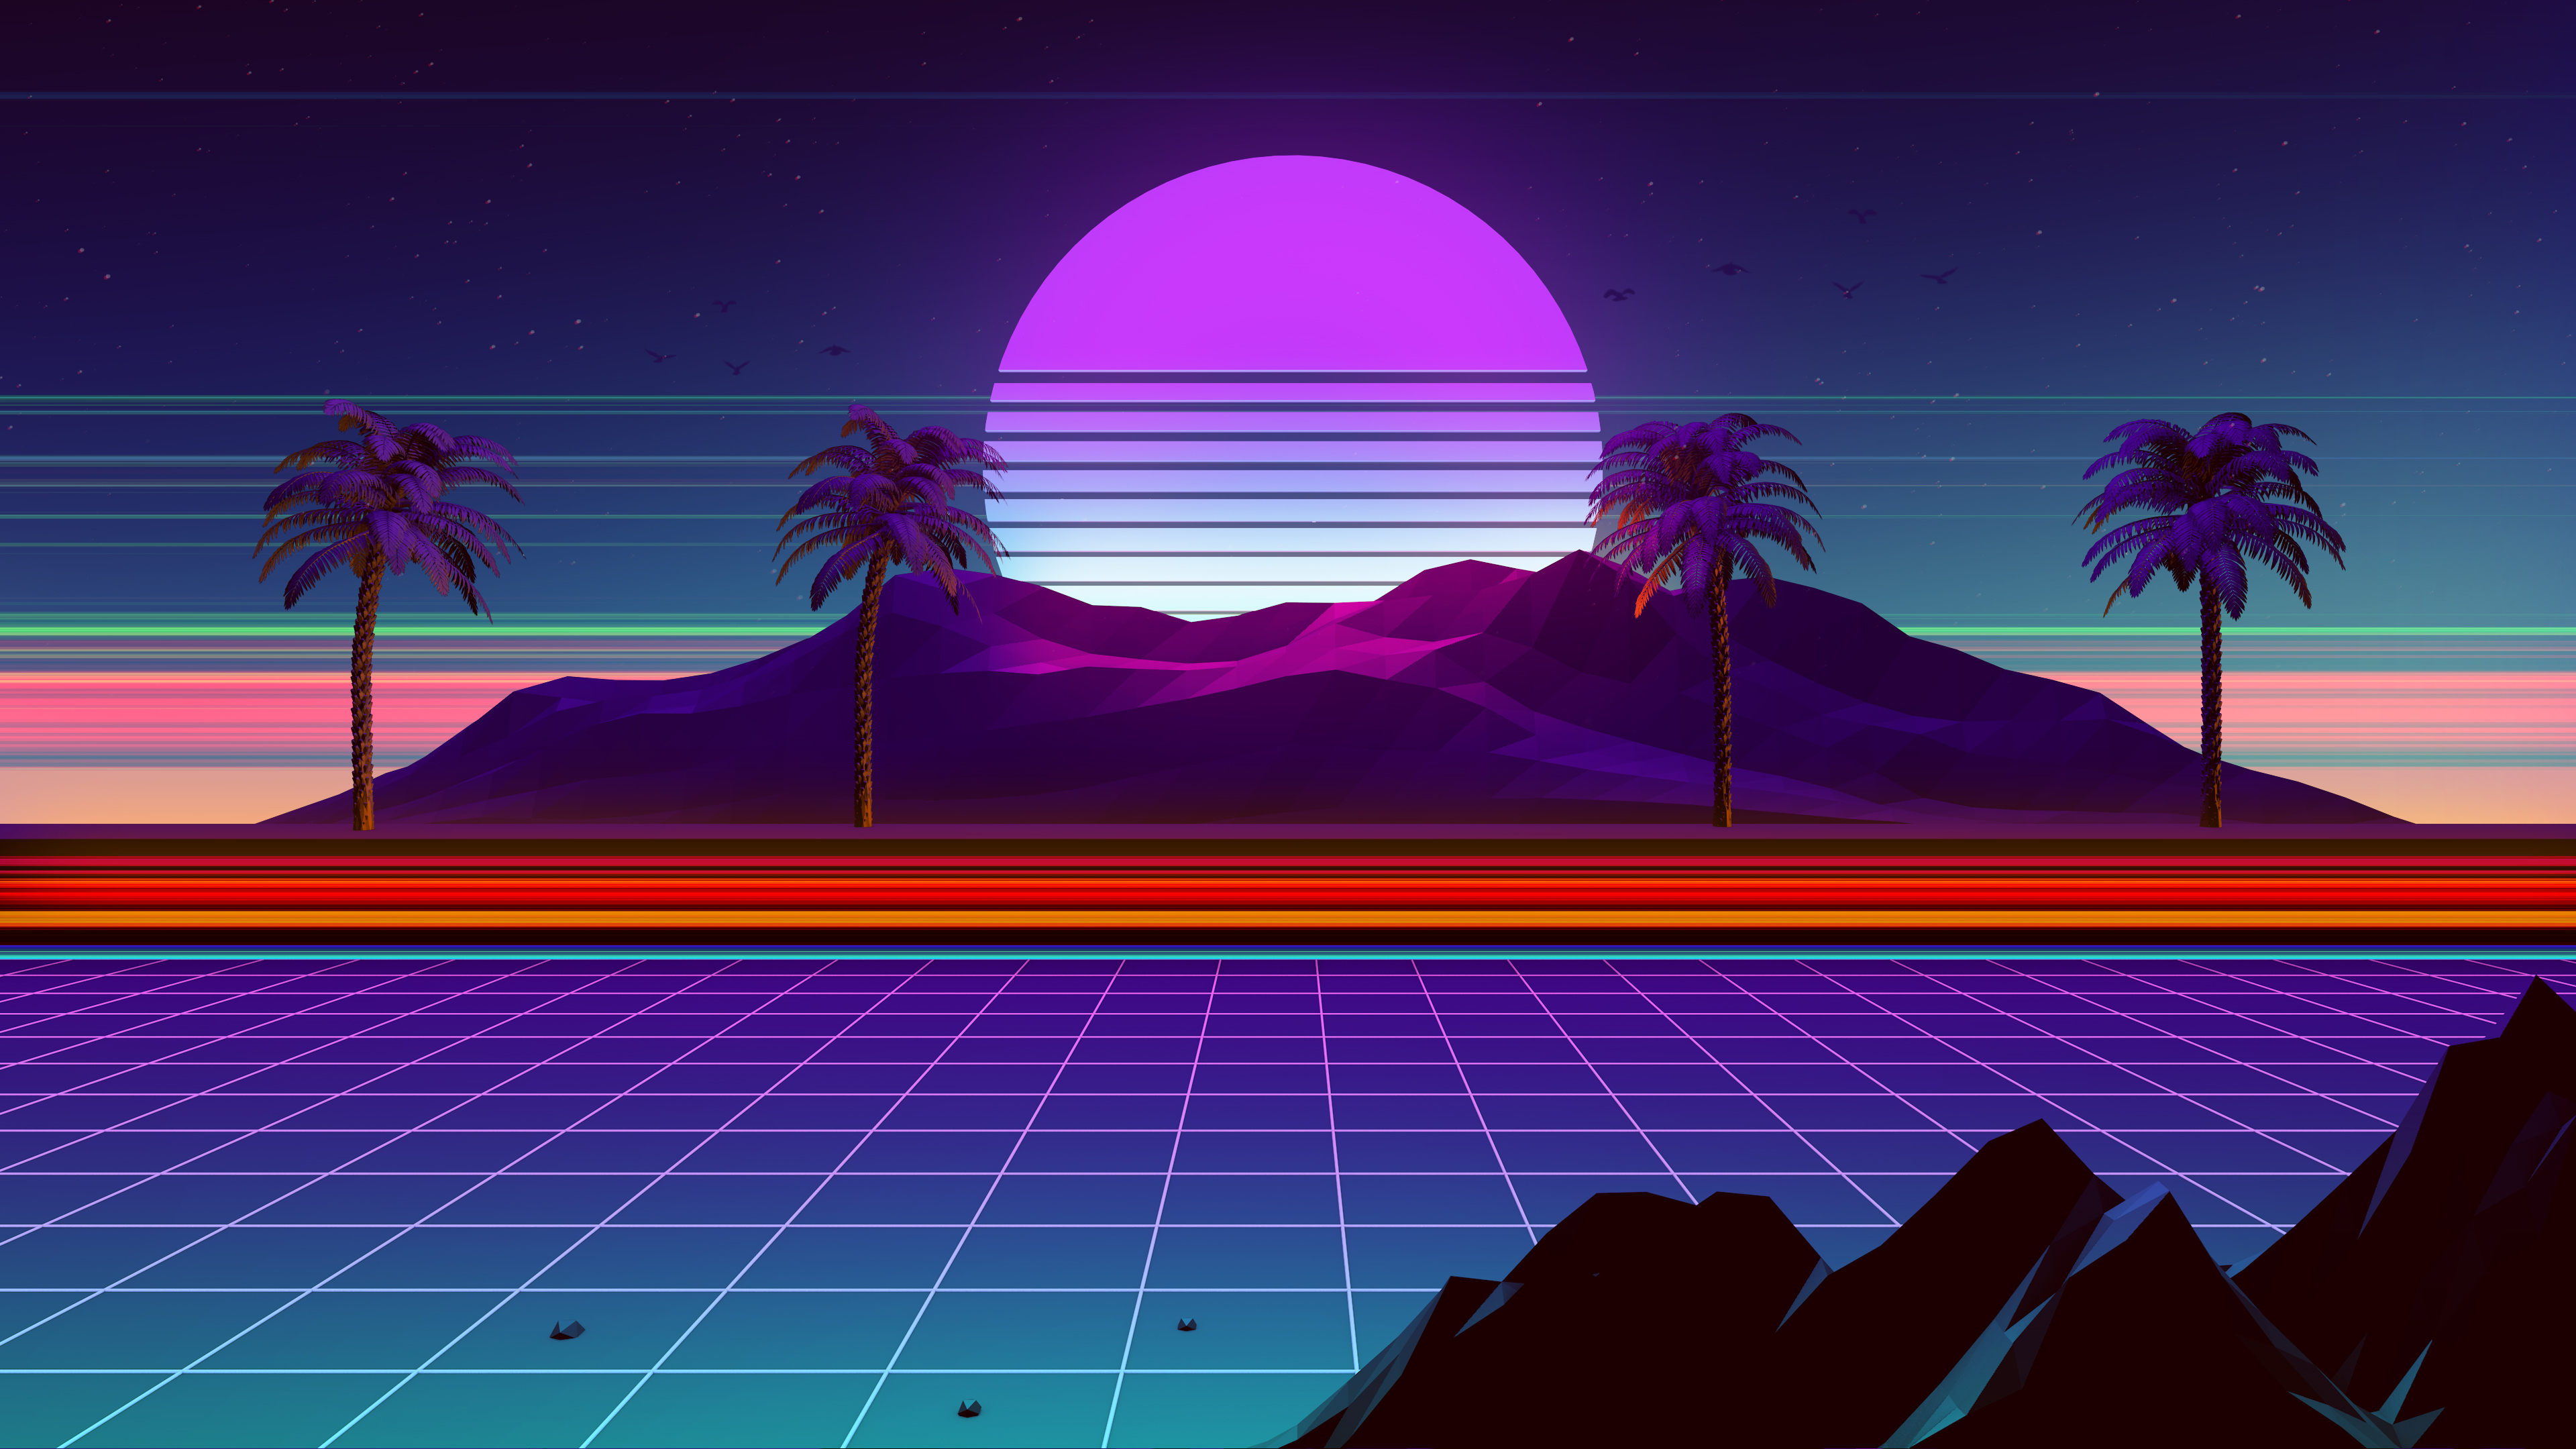 Synthwave And Retrowave Wallpaper HD Artist 4K Wallpapers Images 3840x2160